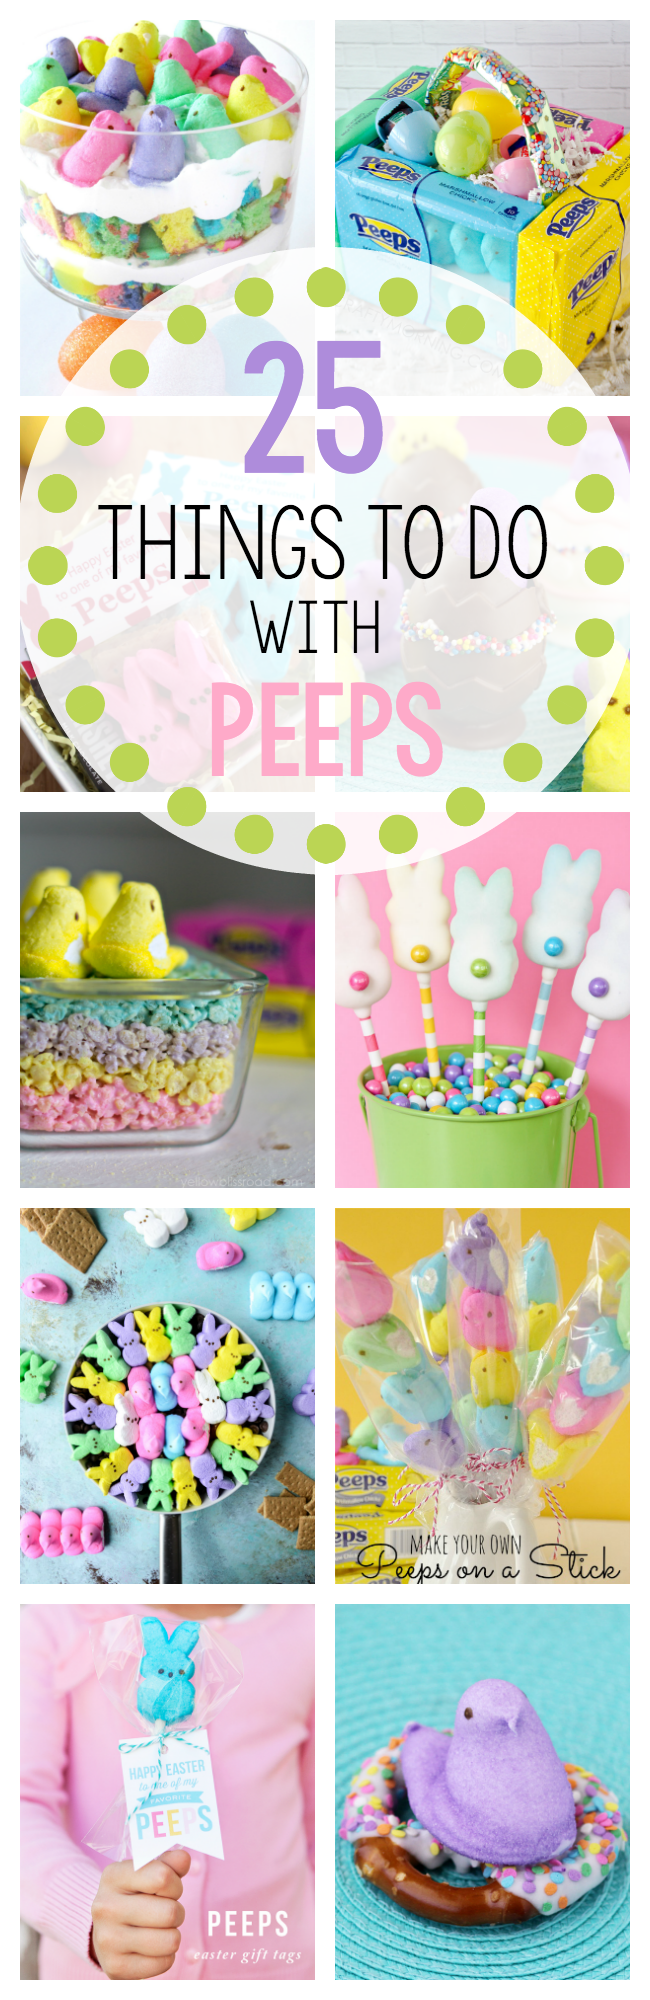 Peeps are so cute! These 25 fun things to do with Peeps will have you enjoying their cute little faces whether you enjoy eating them or not. #easter #eastercrafts #easterdessert